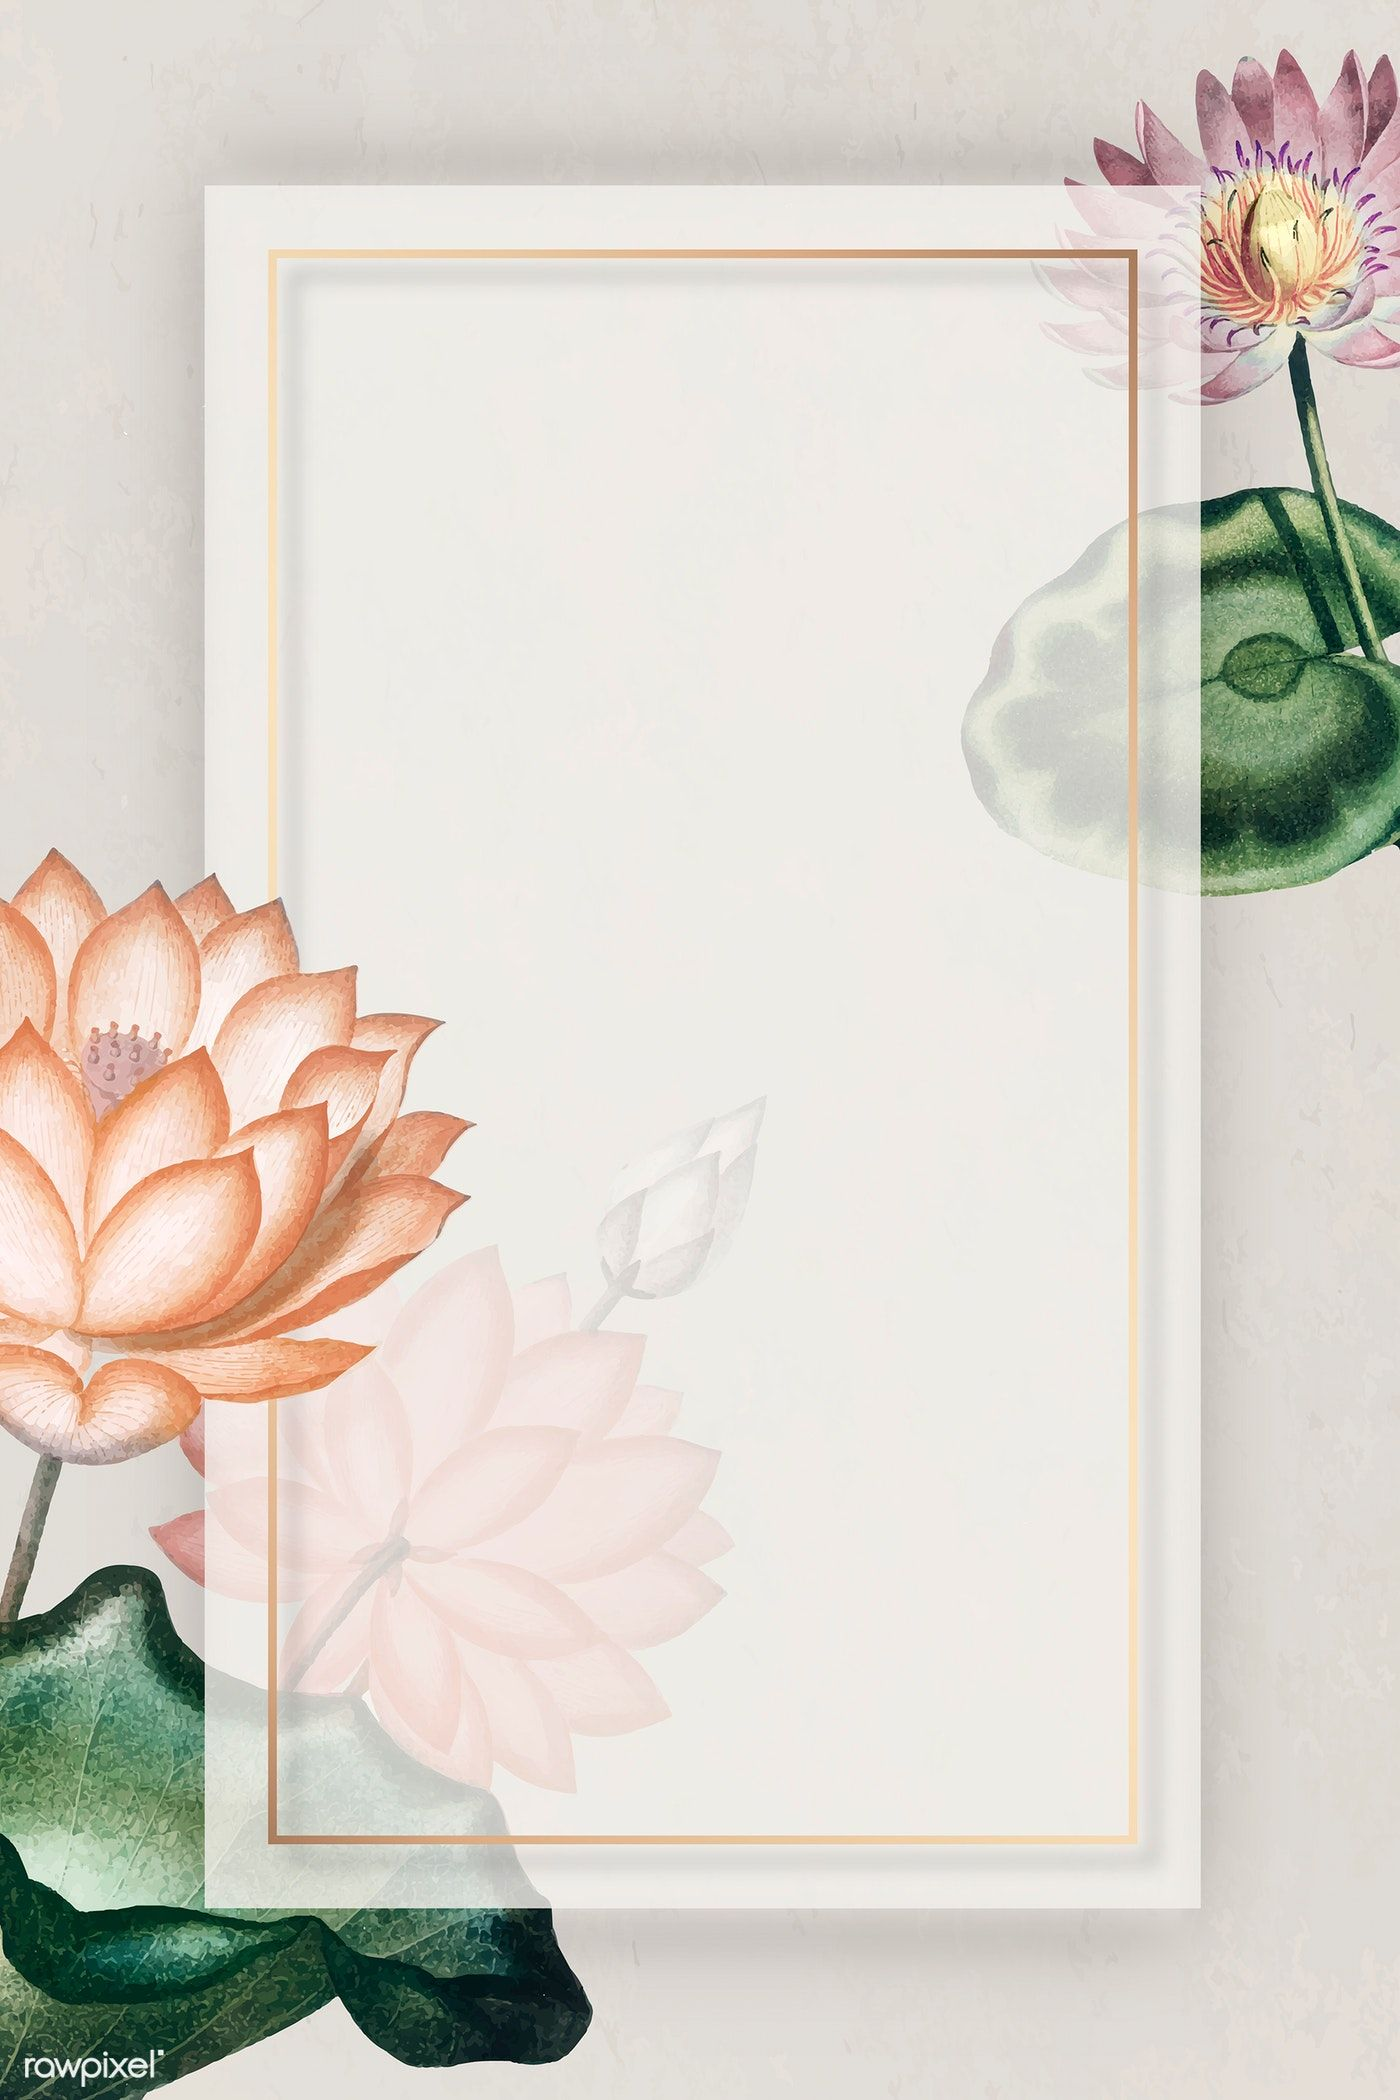 Download premium vector of Blank colorful water lilies